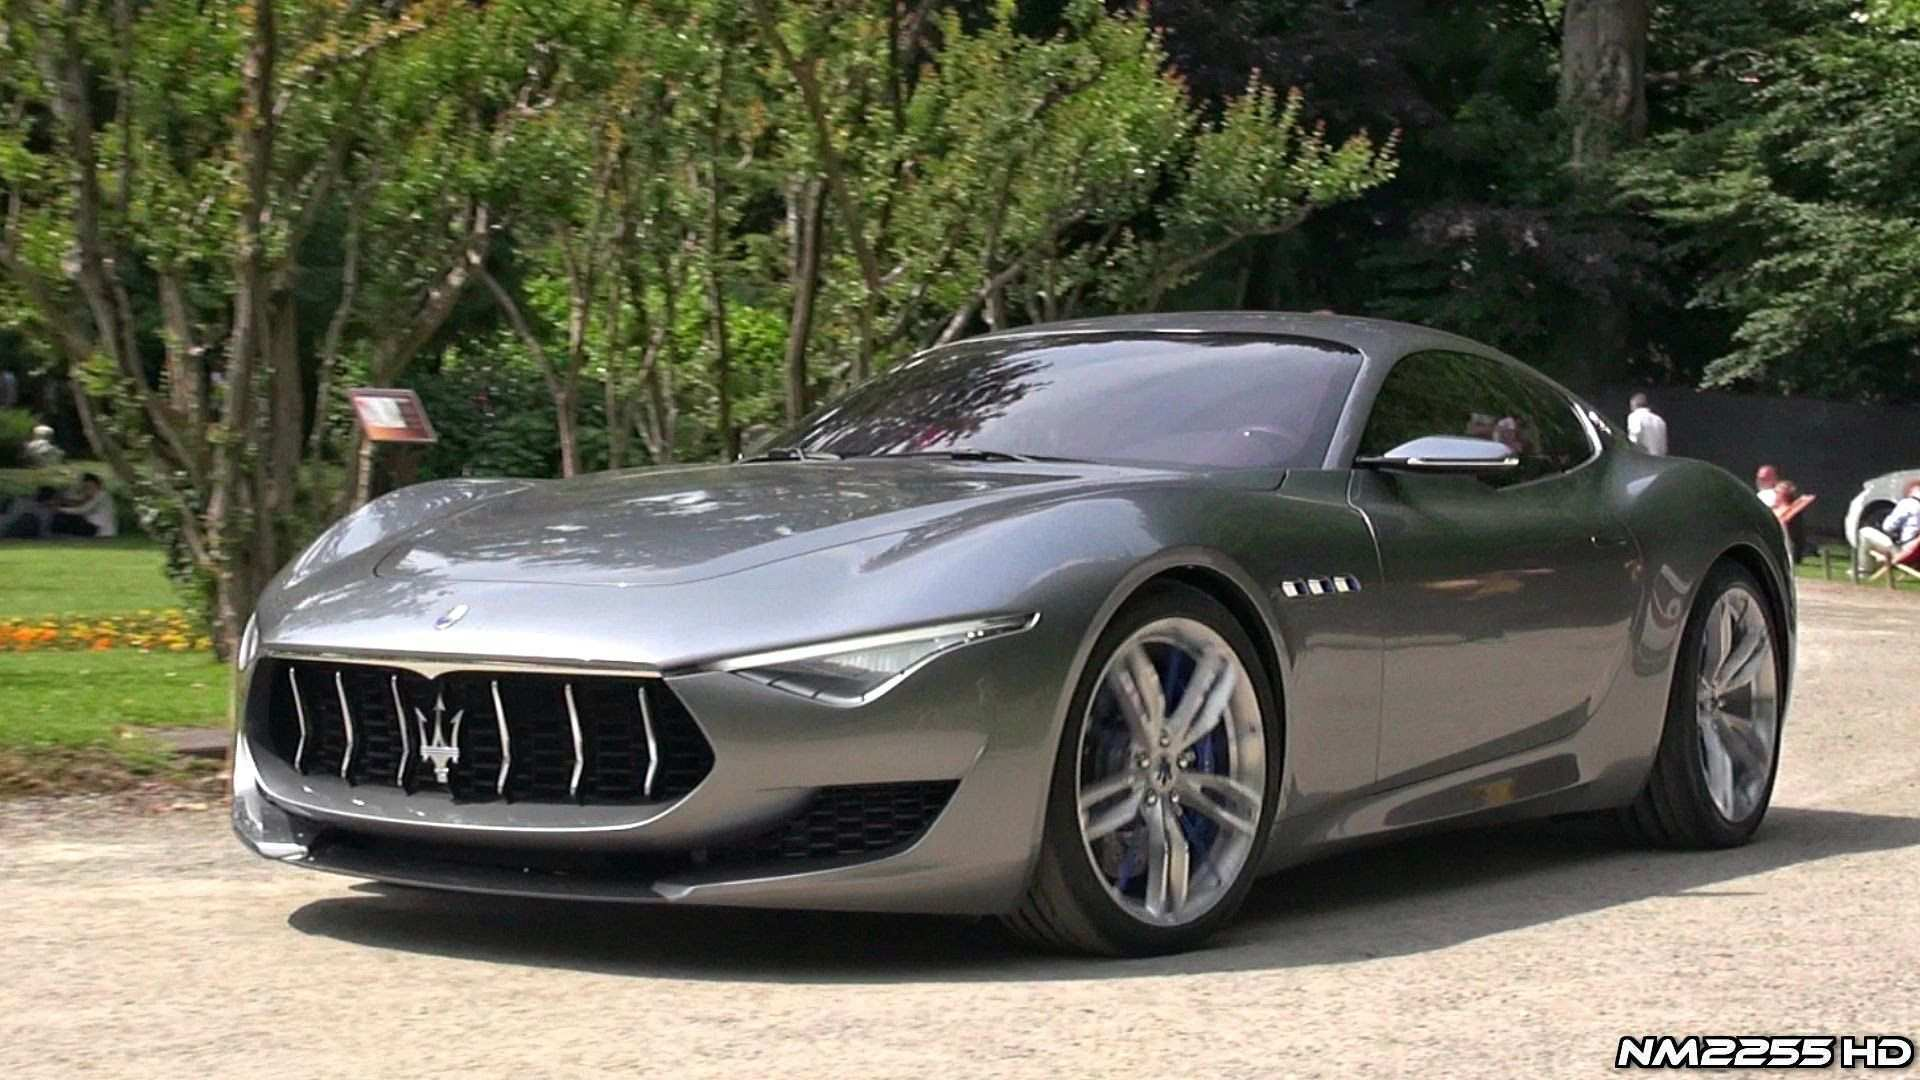 24 New 2020 Maserati Alfieris Release for 2020 Maserati Alfieris